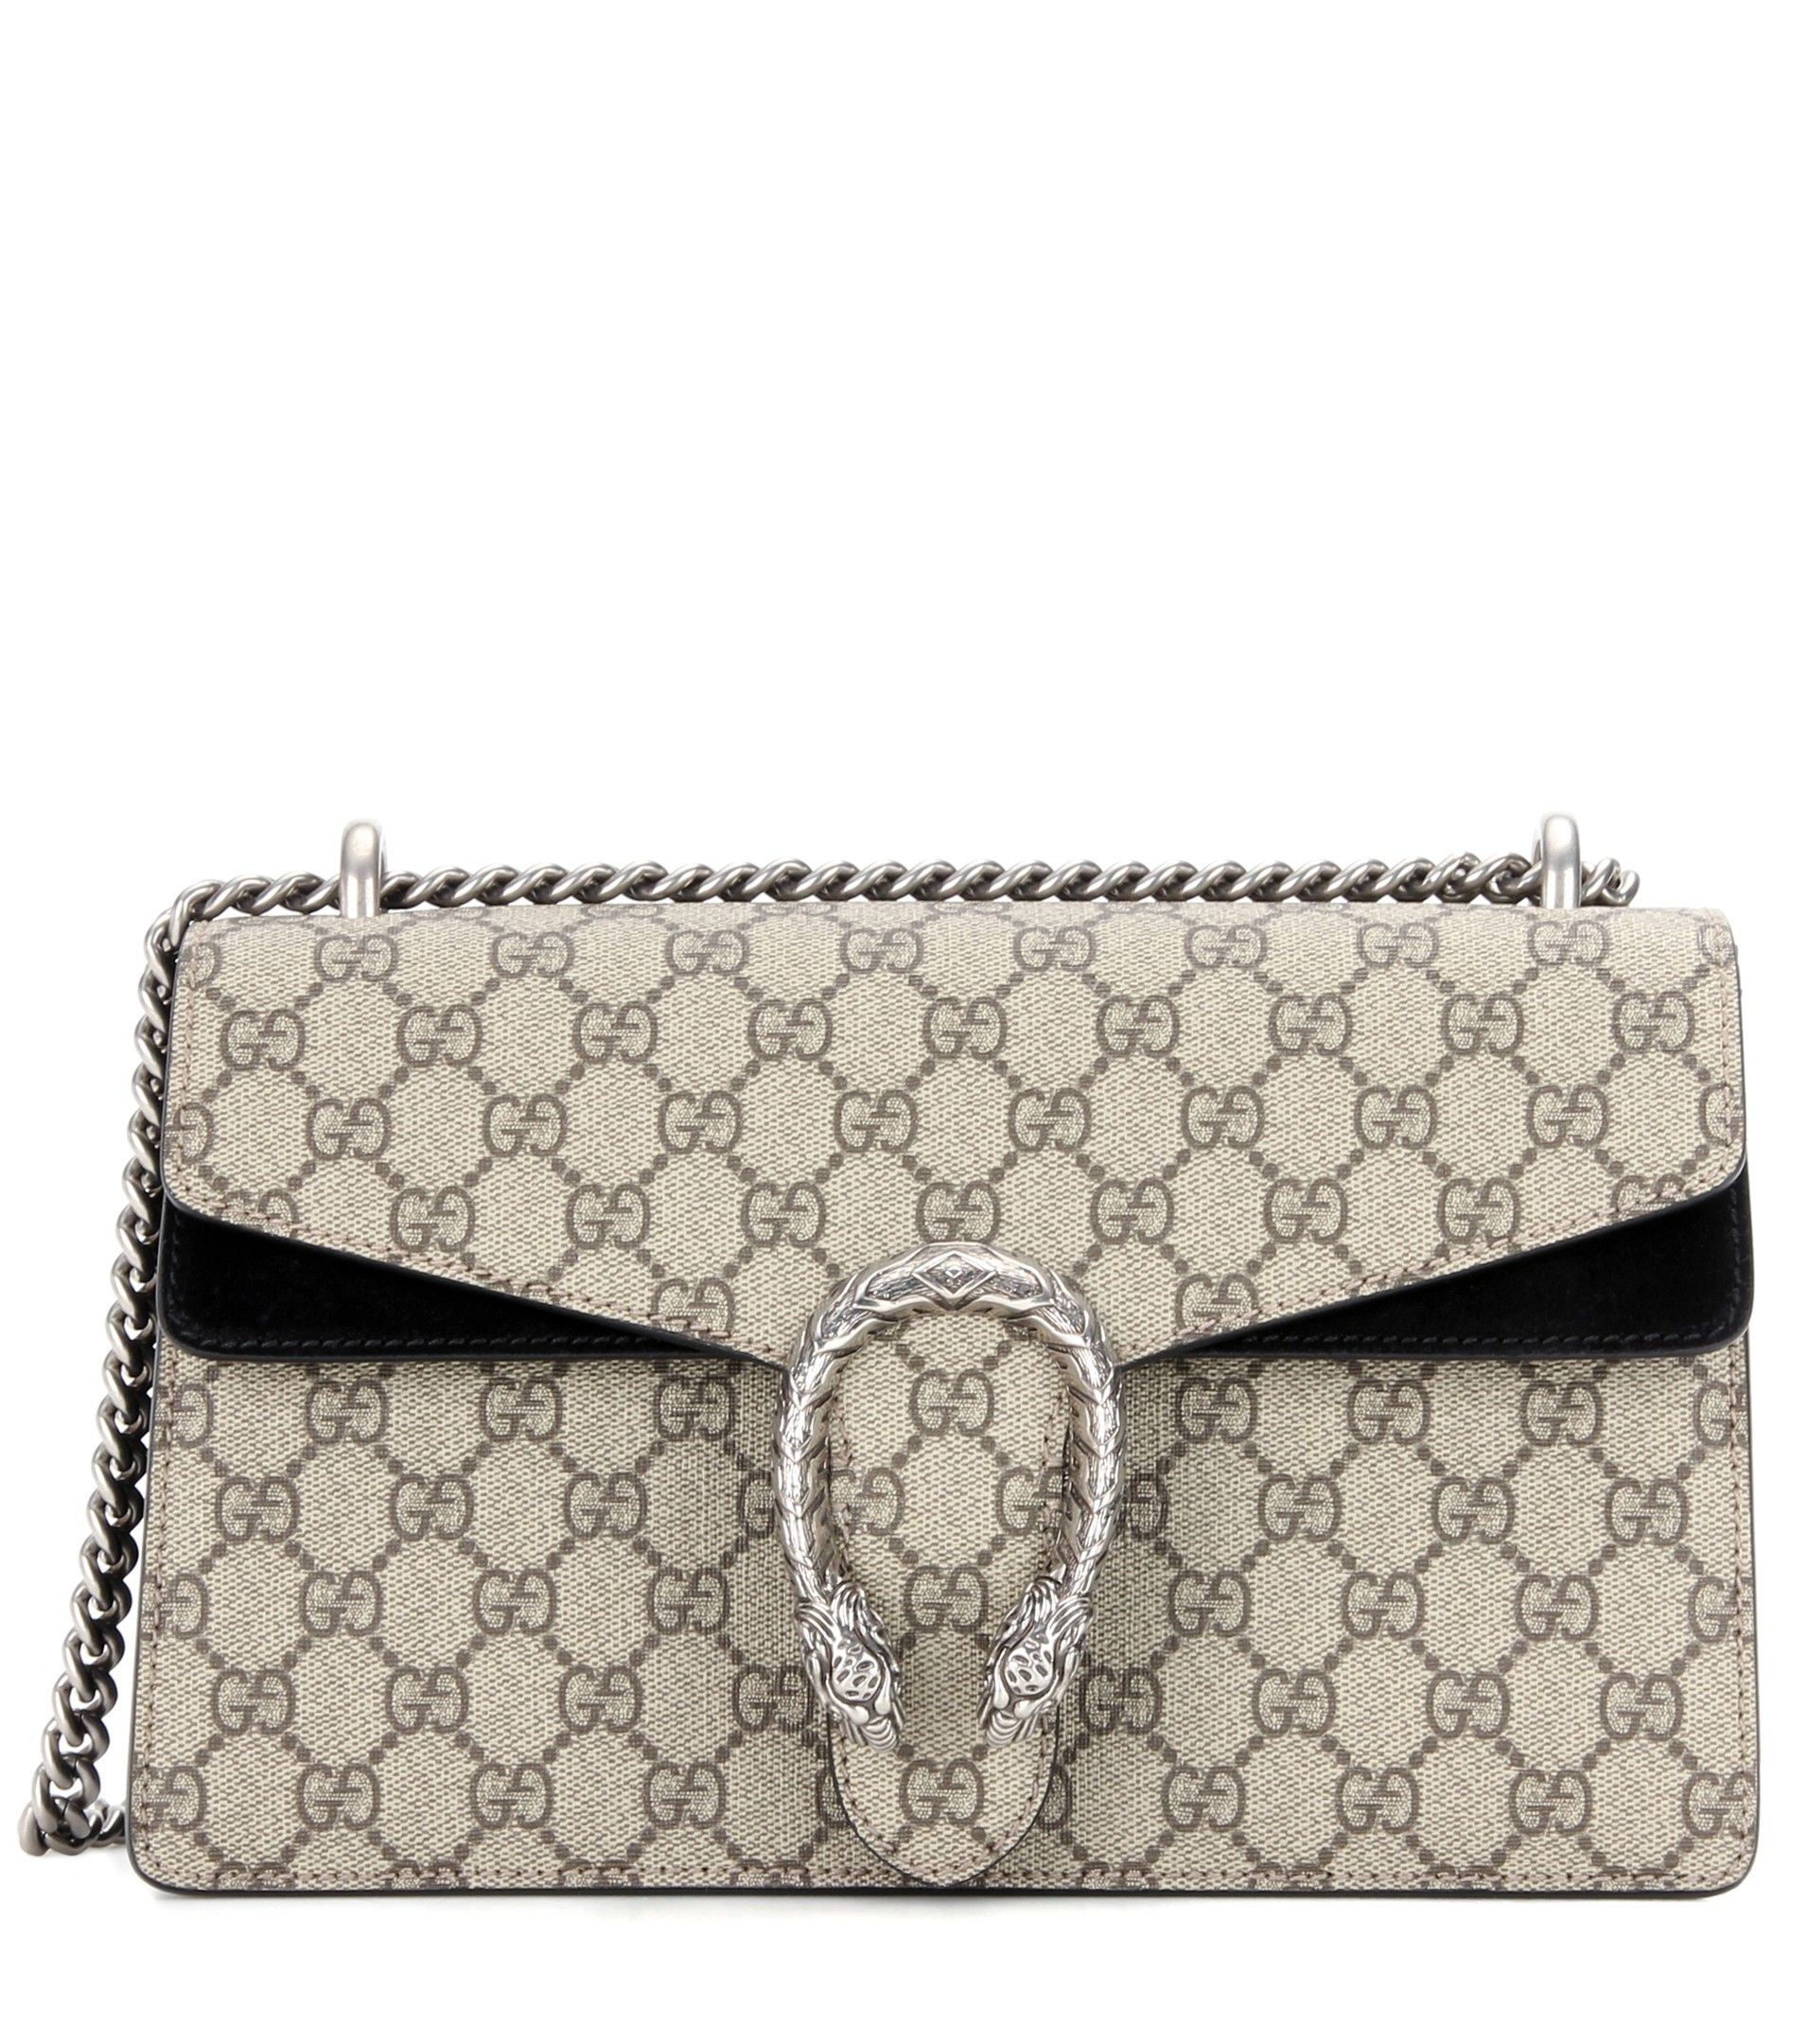 50c8ebec562274 Gucci - Dionysus GG Supreme Small coated canvas and suede shoulder bag - A  luxury staple